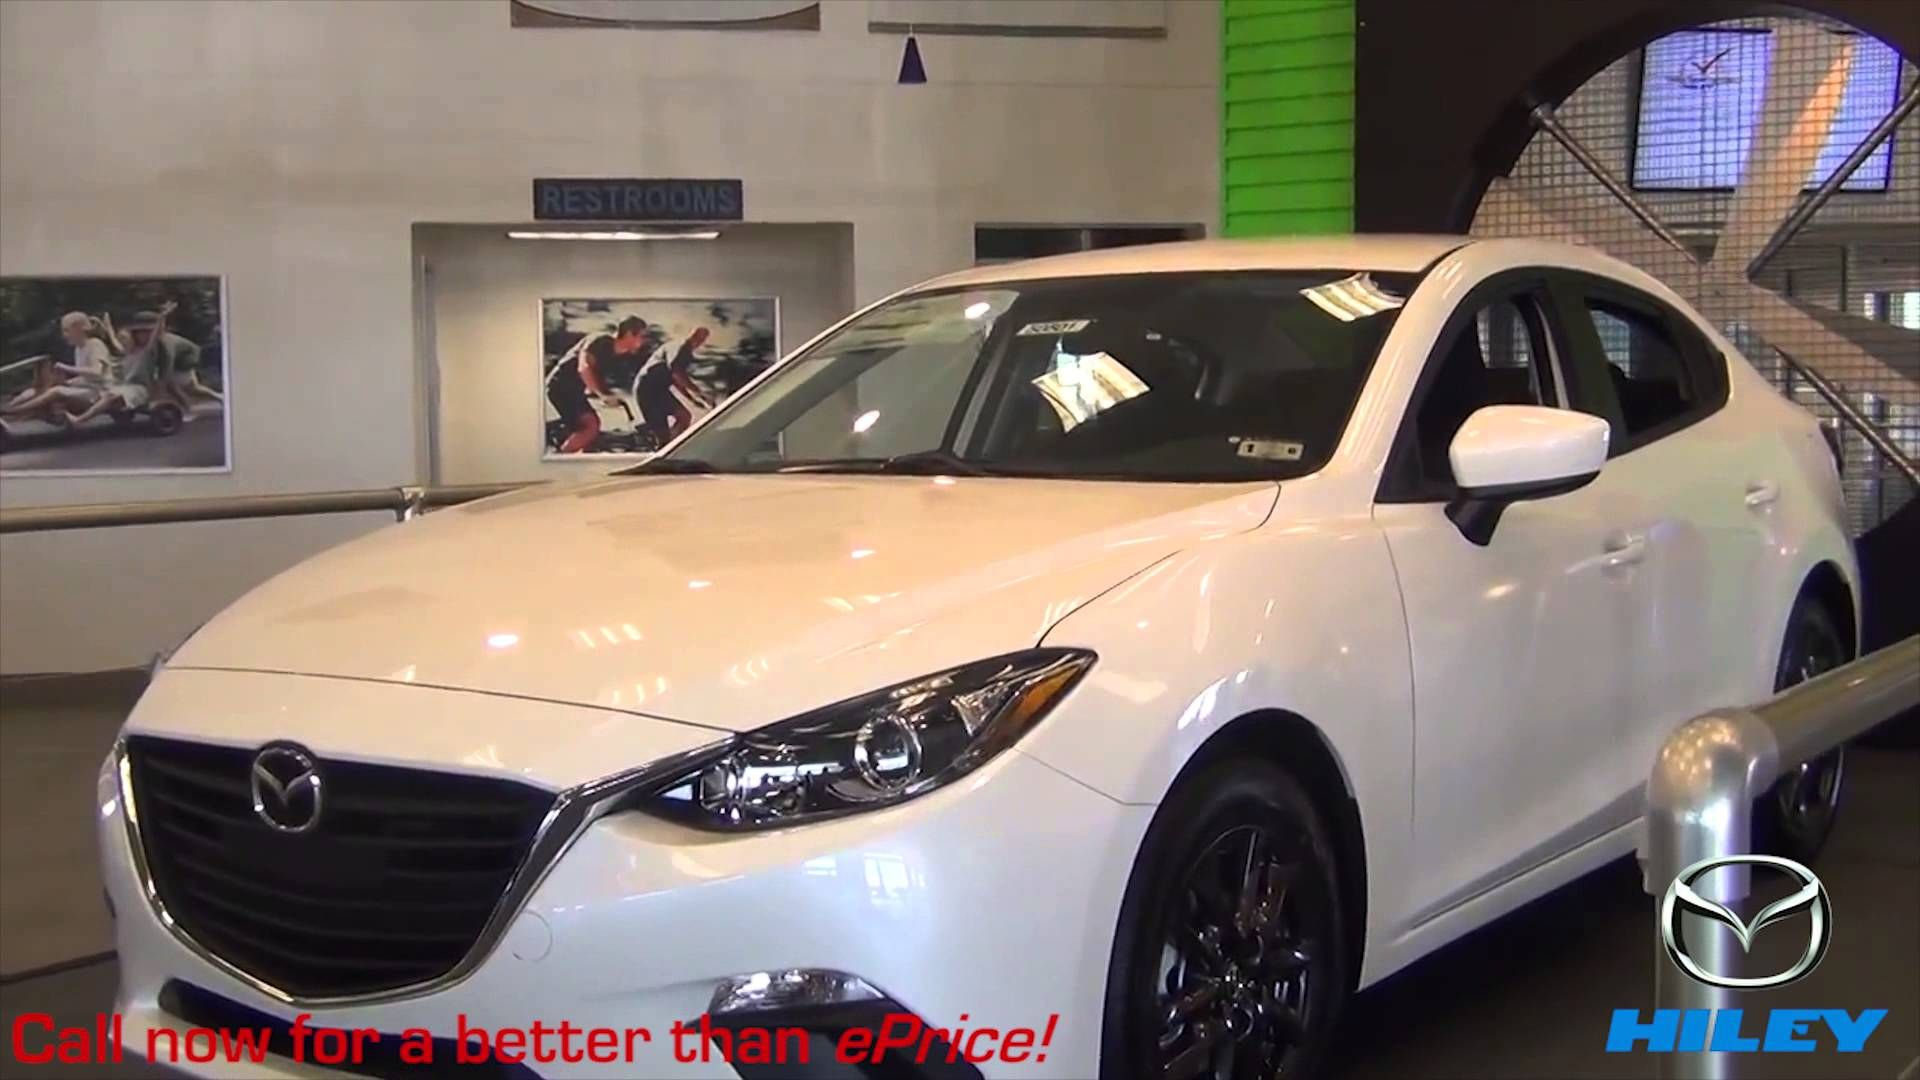 Dfw Hiley Cars In Arlington Hiley Mazda Cars In Dallas Hiley Mazda Specials Mesquite Tx Mazda Mazda Cars New Cars